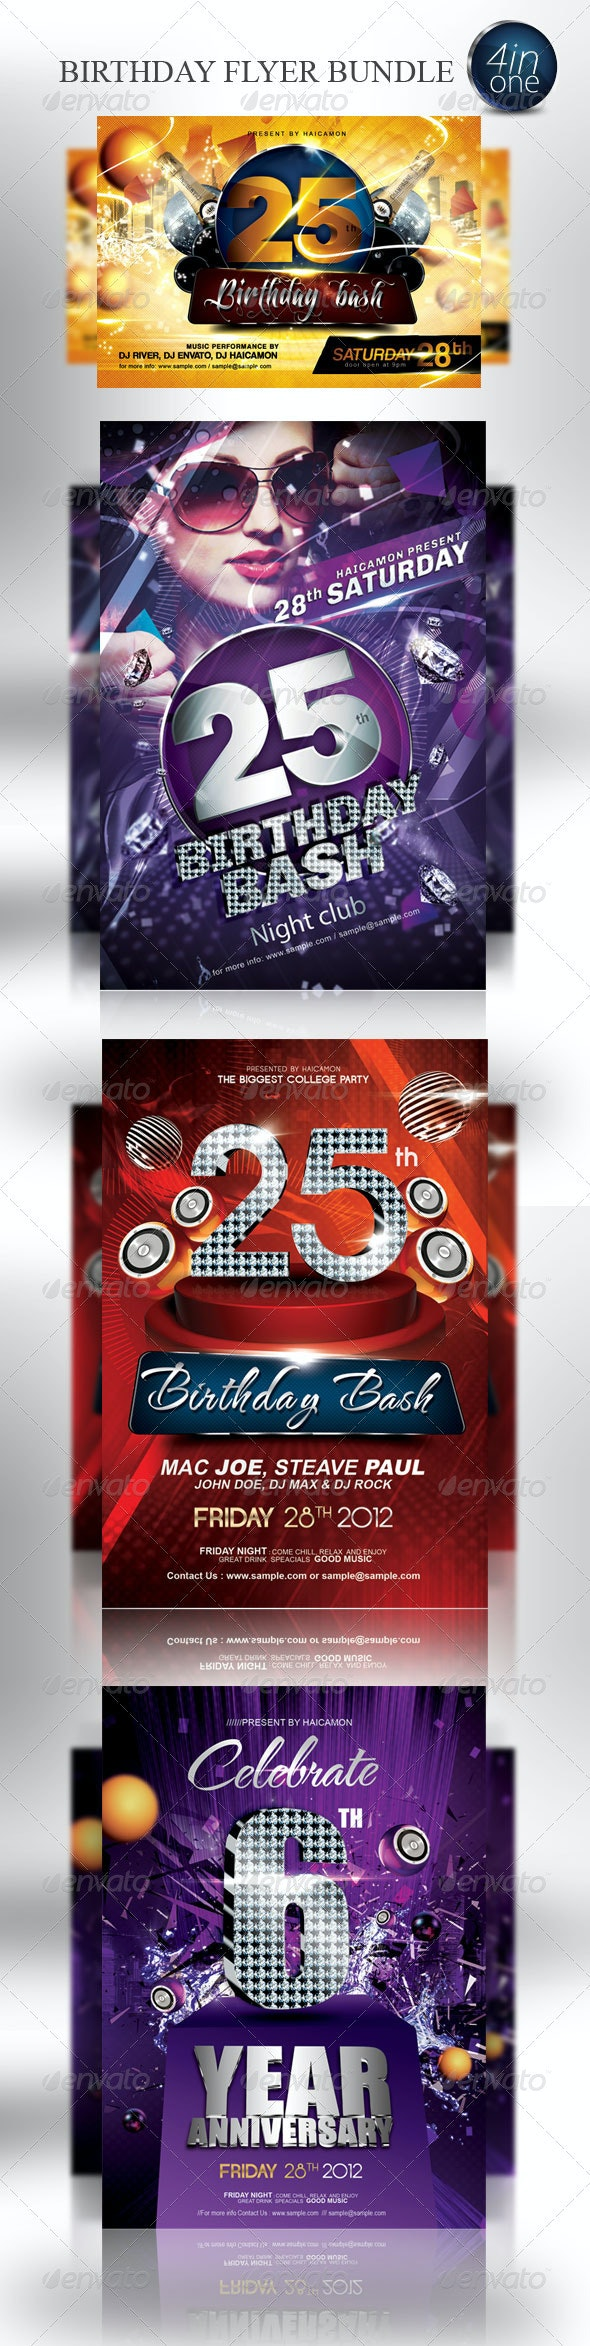 Birthday Party Invitation Flyer Bundle - Clubs & Parties Events